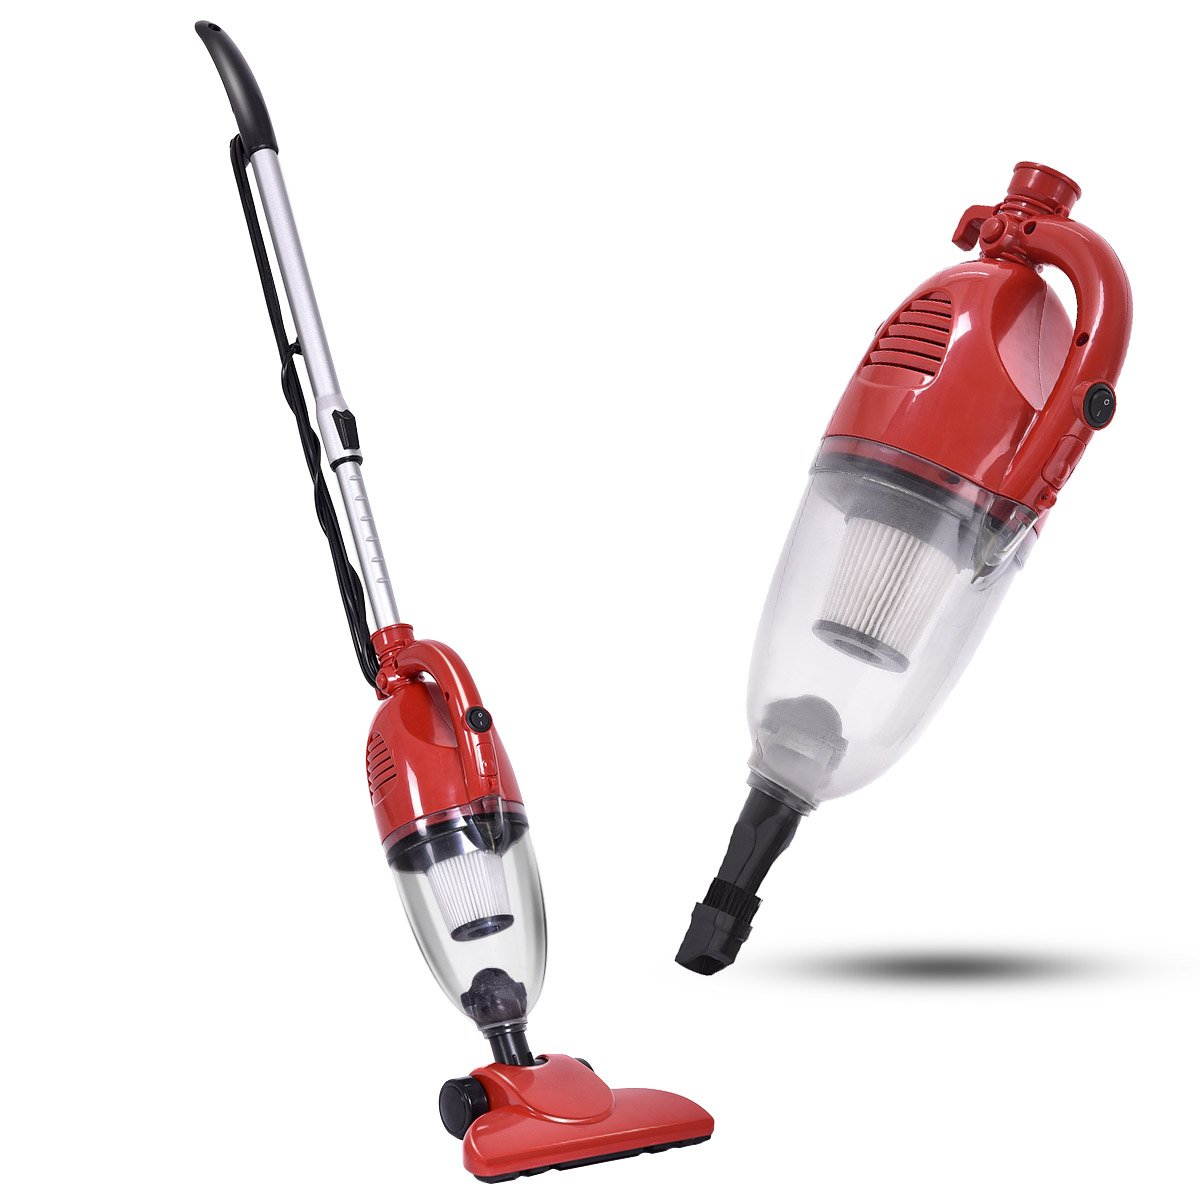 COSTWAY Upright Vacuum Cleaner 2-in-1 Professional Bagless Stick and Handheld Vacuum for Carpet and Hard Floor, Red